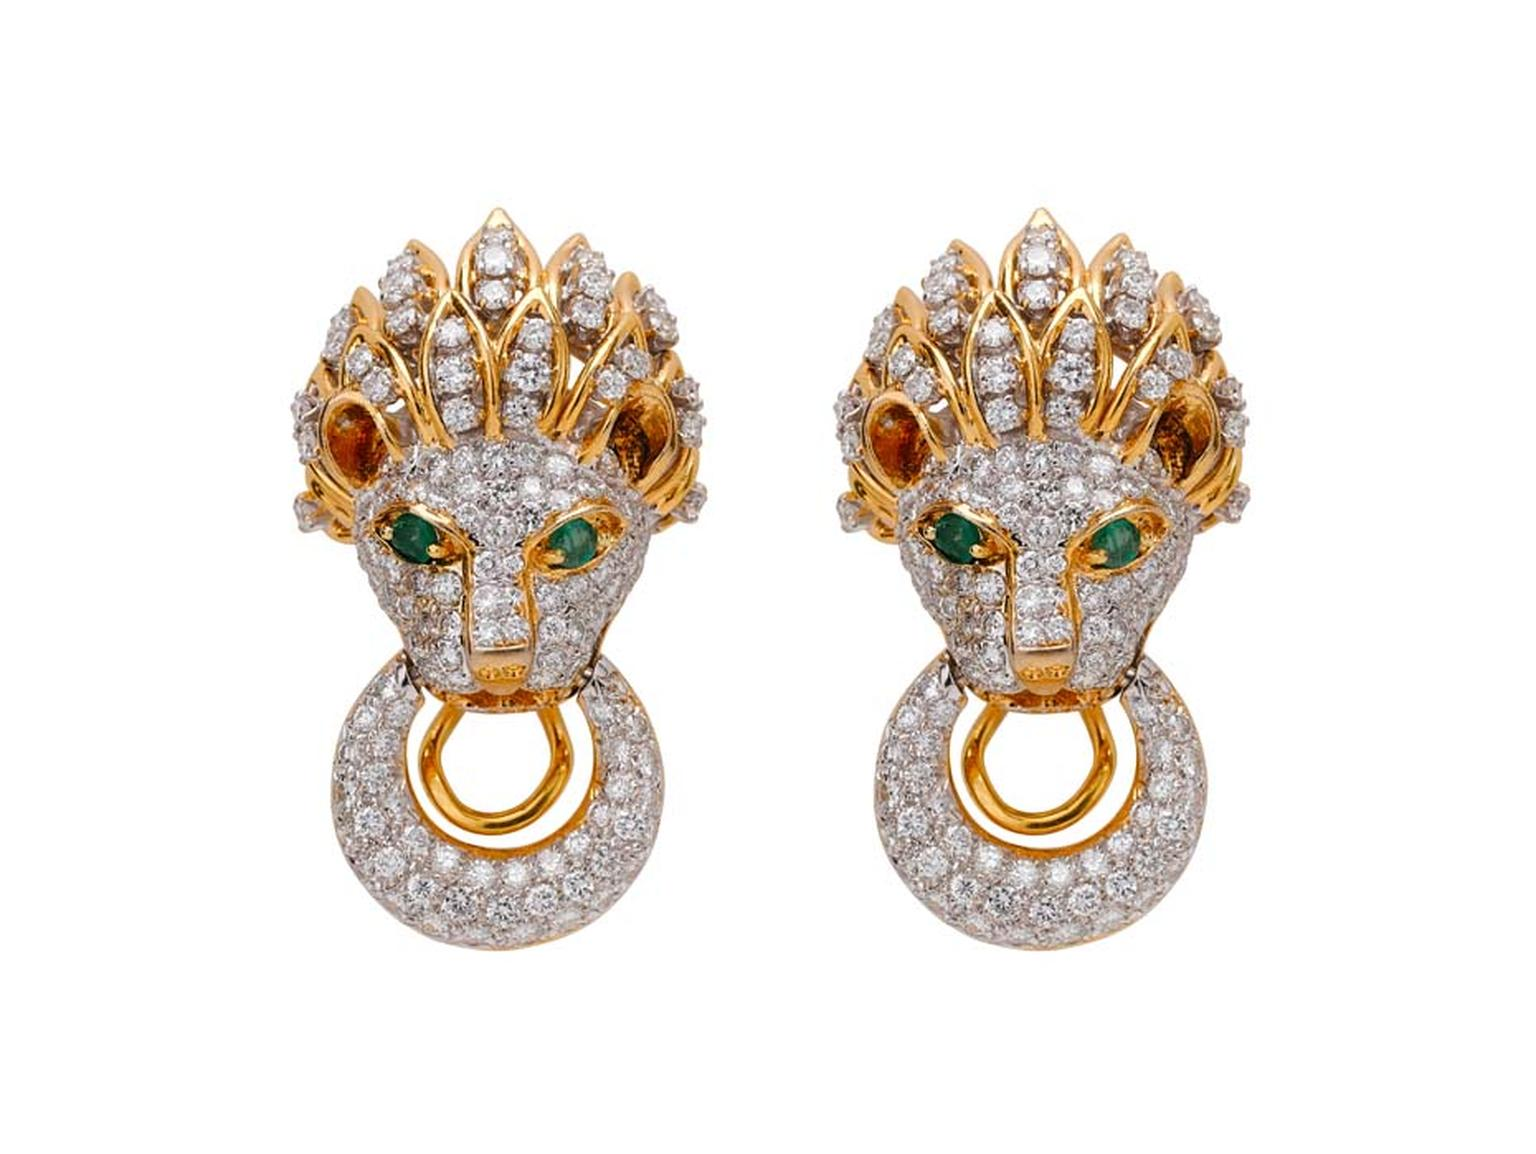 Latest Revival vintage Gold Lion earrings with diamonds, from the Estate Collection.